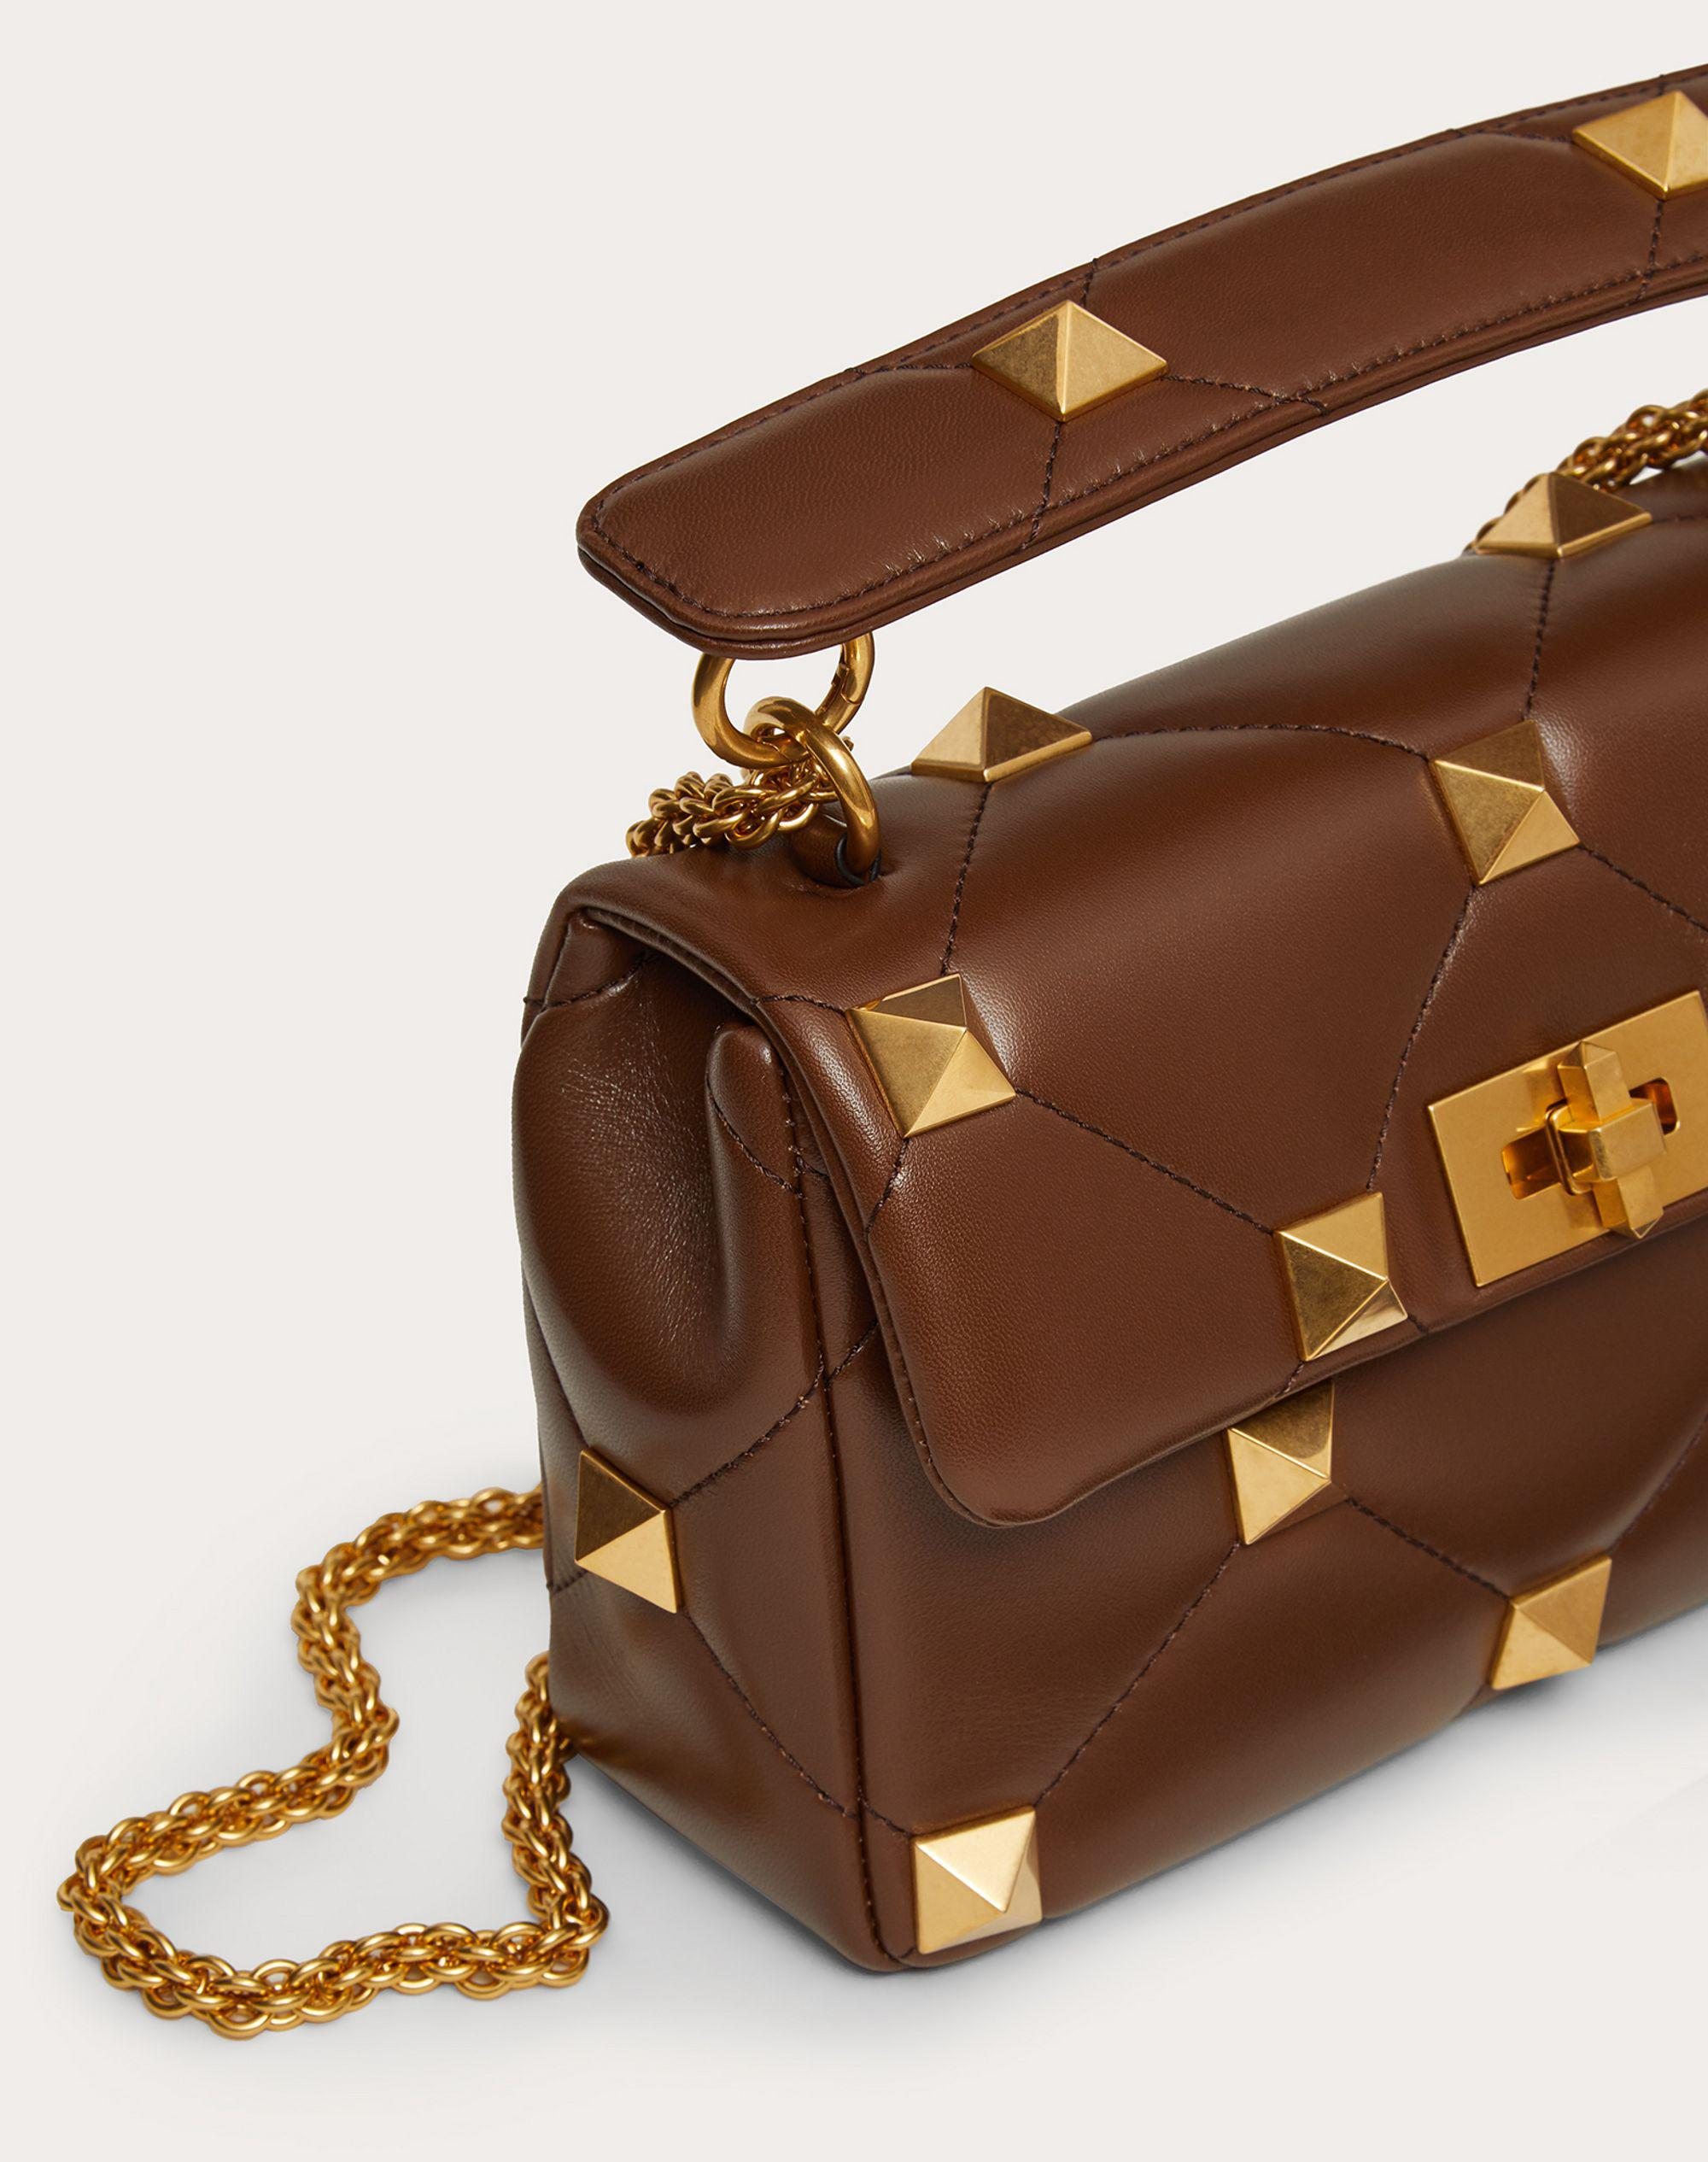 Medium Roman Stud The Shoulder Bag in Nappa with Chain 4